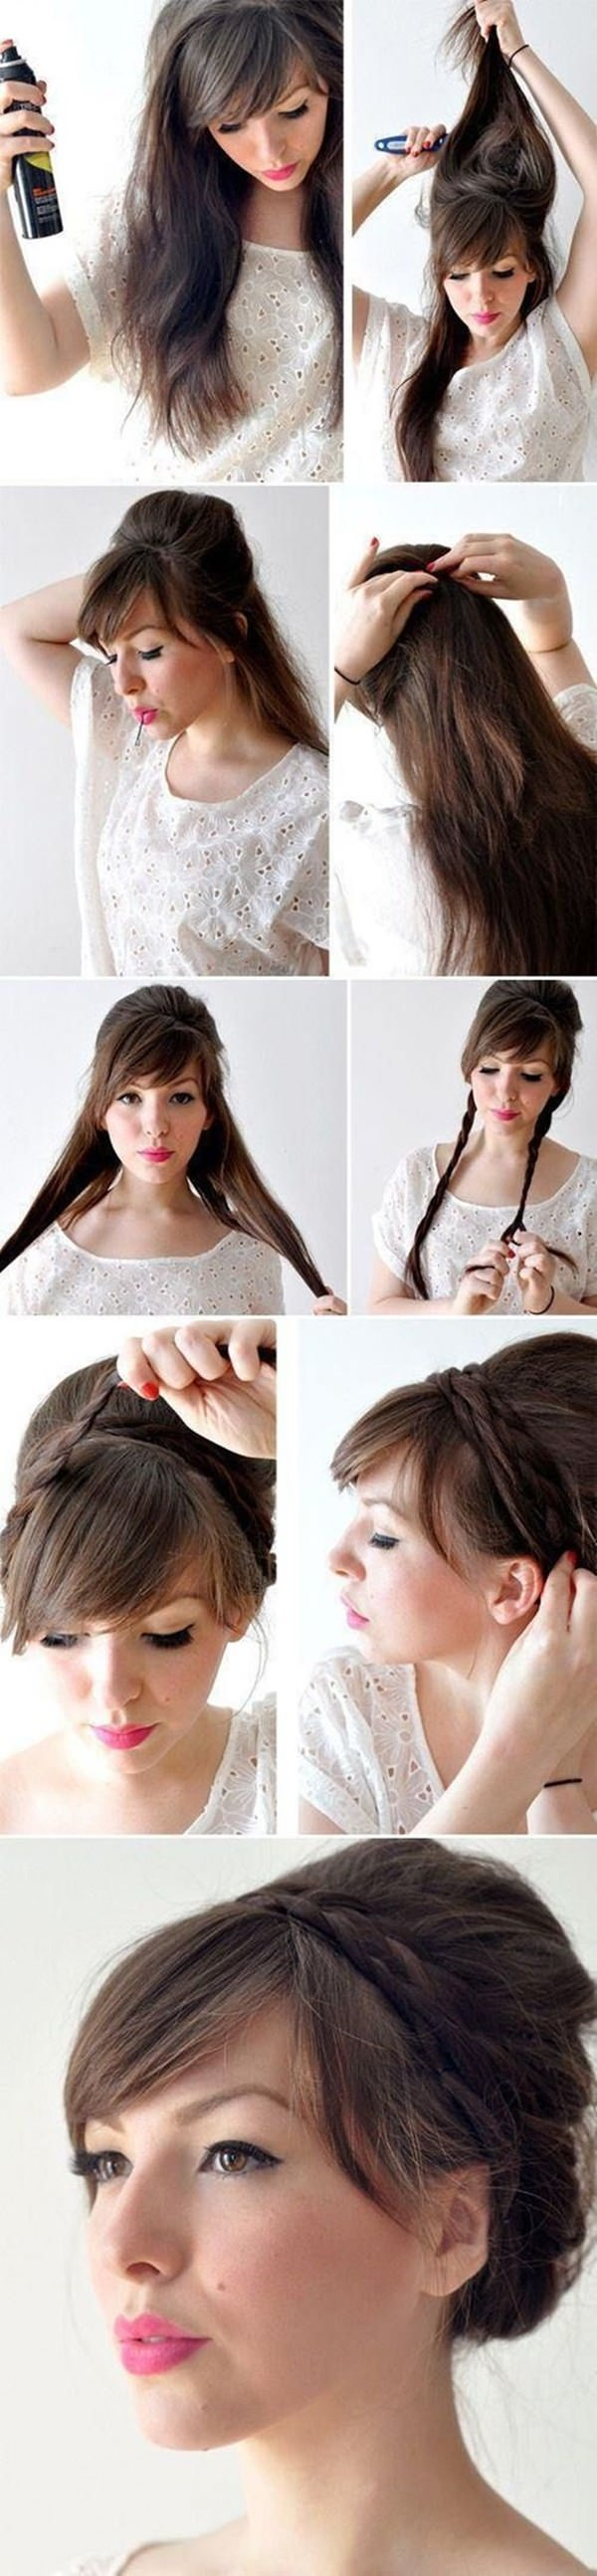 45easy-updos-for-long-hair-100416